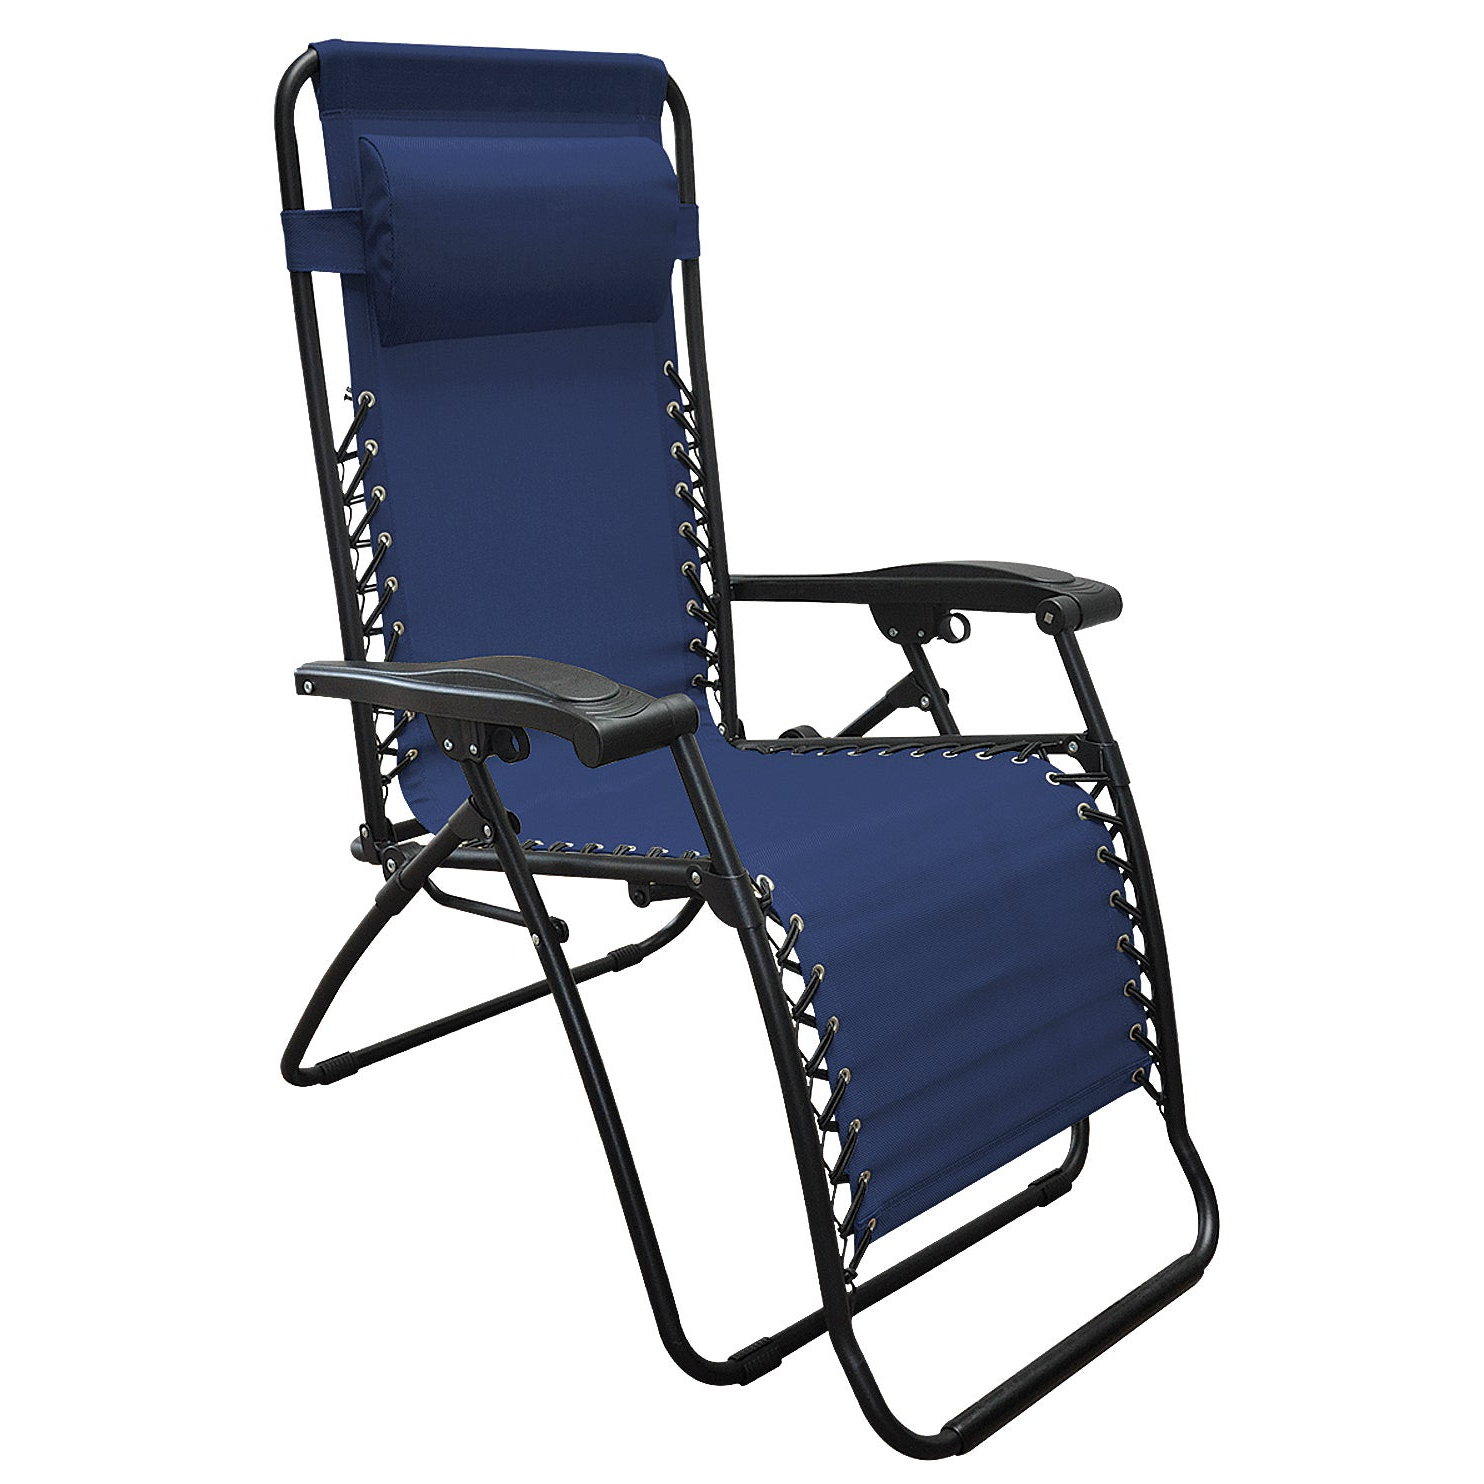 Latest Caravan Canopy Zero Gravity Chairs Within Caravan Canopy Sports 80009000020 Oversized Blue Zero Gravity Chair (Gallery 22 of 25)